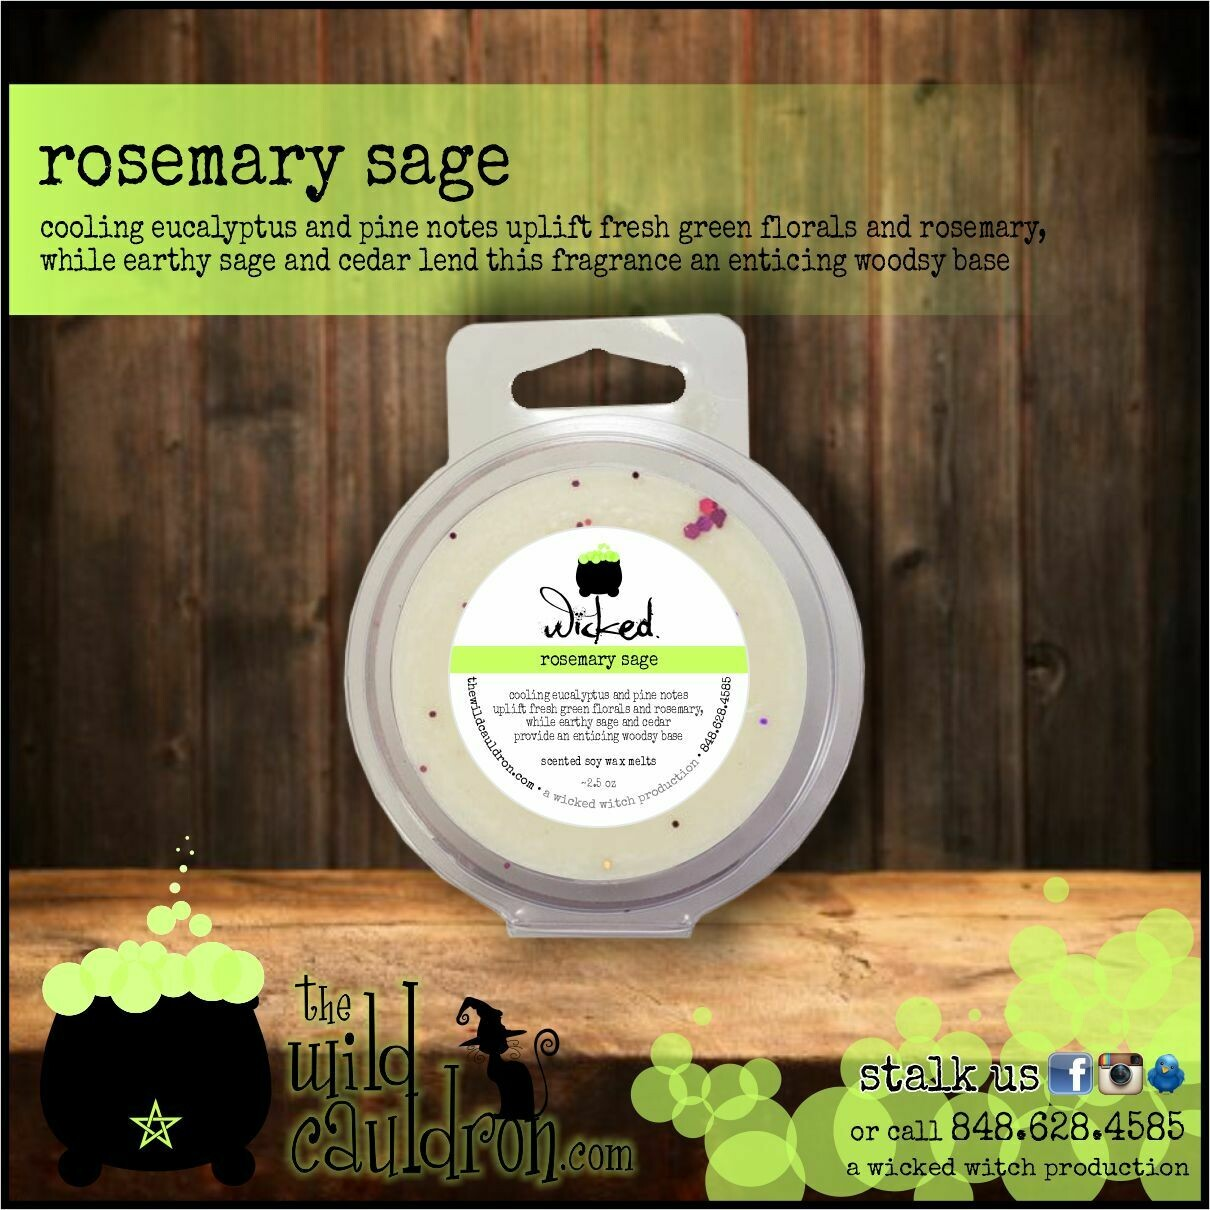 Rosemary Sage Wicked Wax Melts